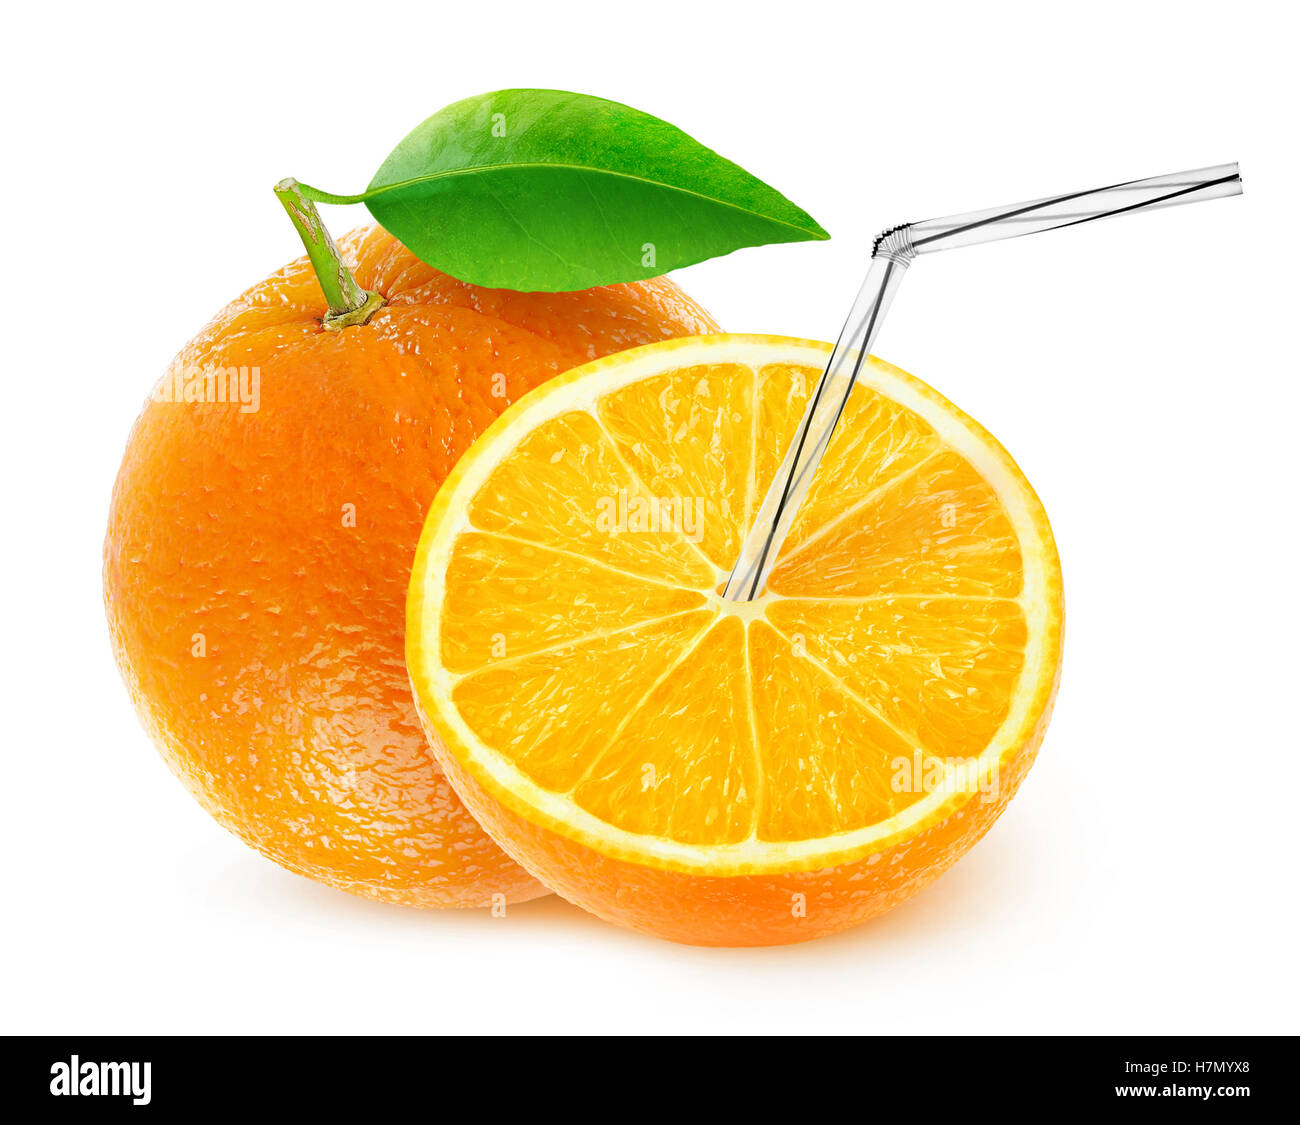 Isolated orange juice. One and a half fruit with straw in it, natural fresh juice concept isolated on white background - Stock Image